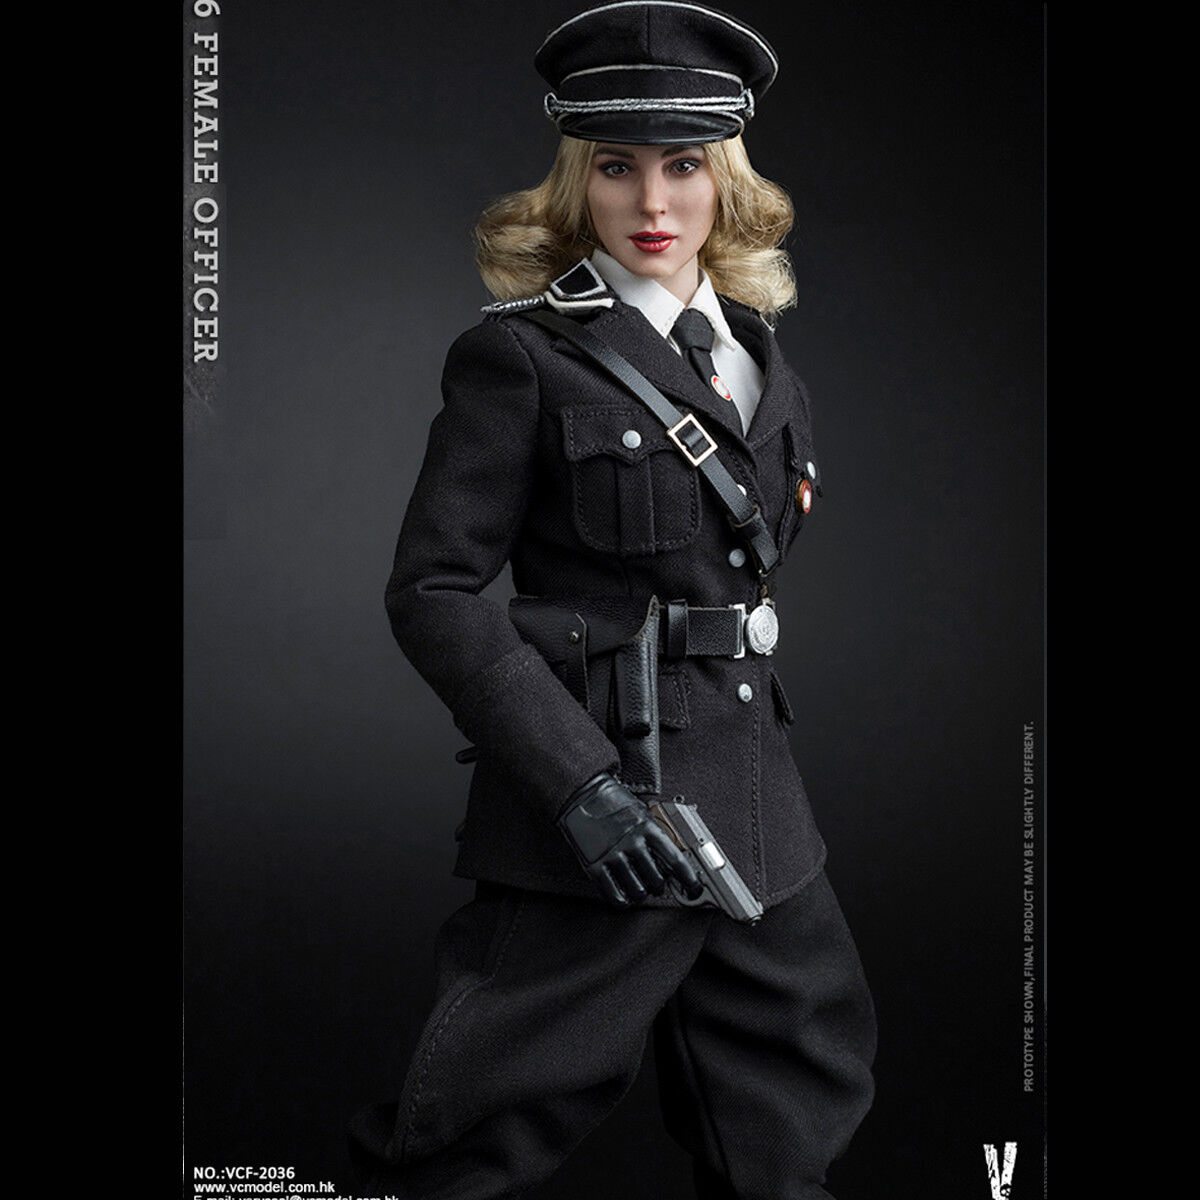 VERYCOOL 1/6 VCF-2036 SS Female Officer Officer Officer Damens Combat Action Figure Collectible 9d889e